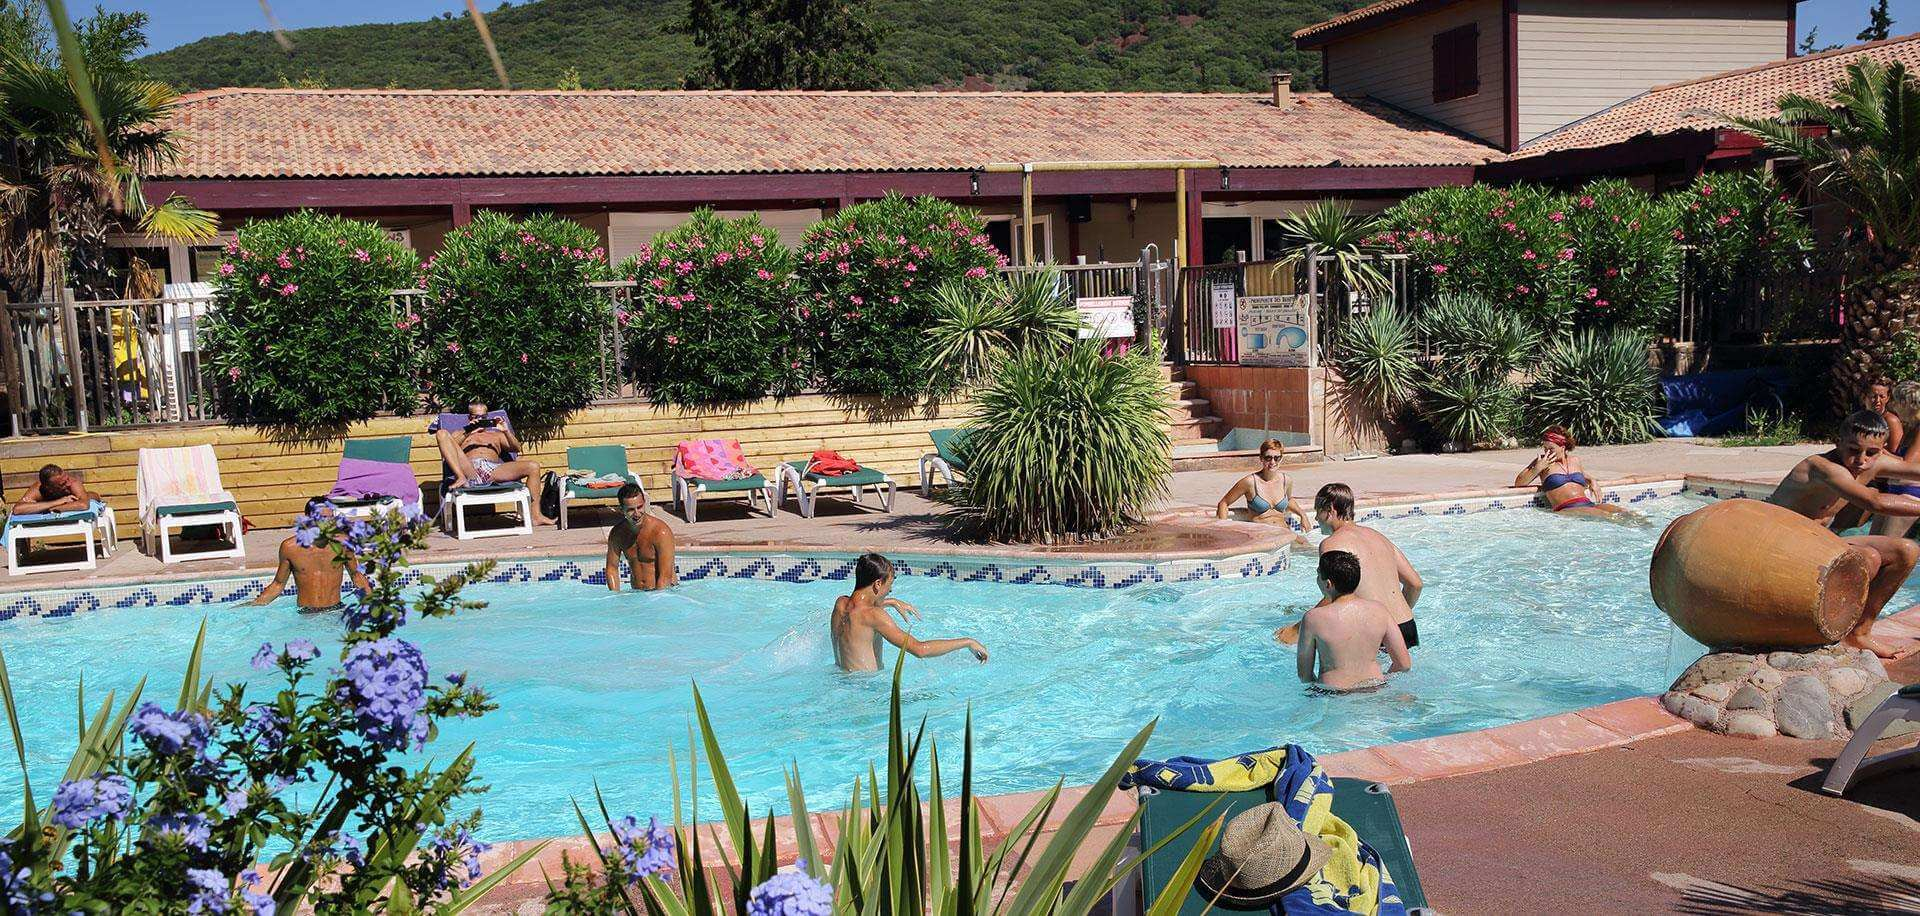 The Relais du Salagou Holiday Village swimming pool